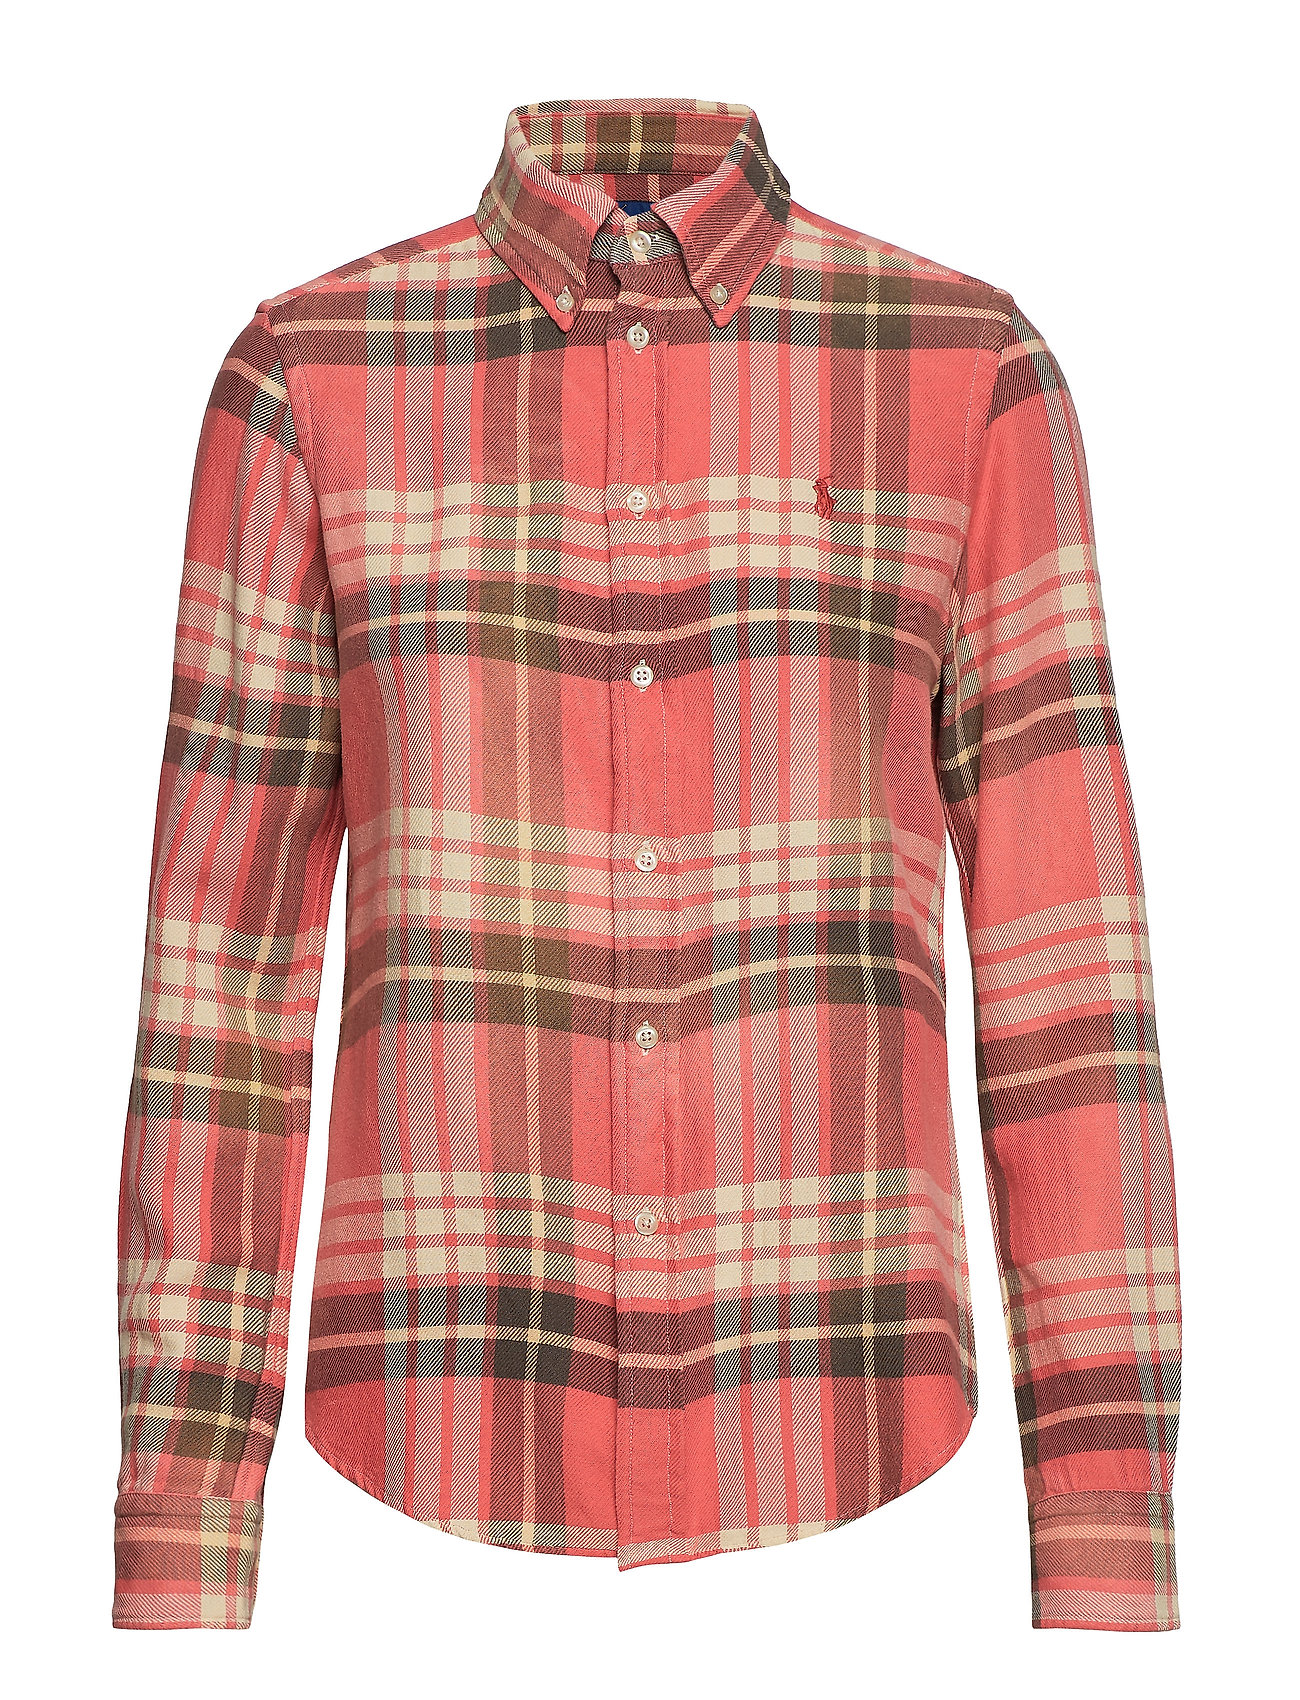 Polo Ralph Lauren Classic Fit Plaid Shirt - 206 RED/NAVY